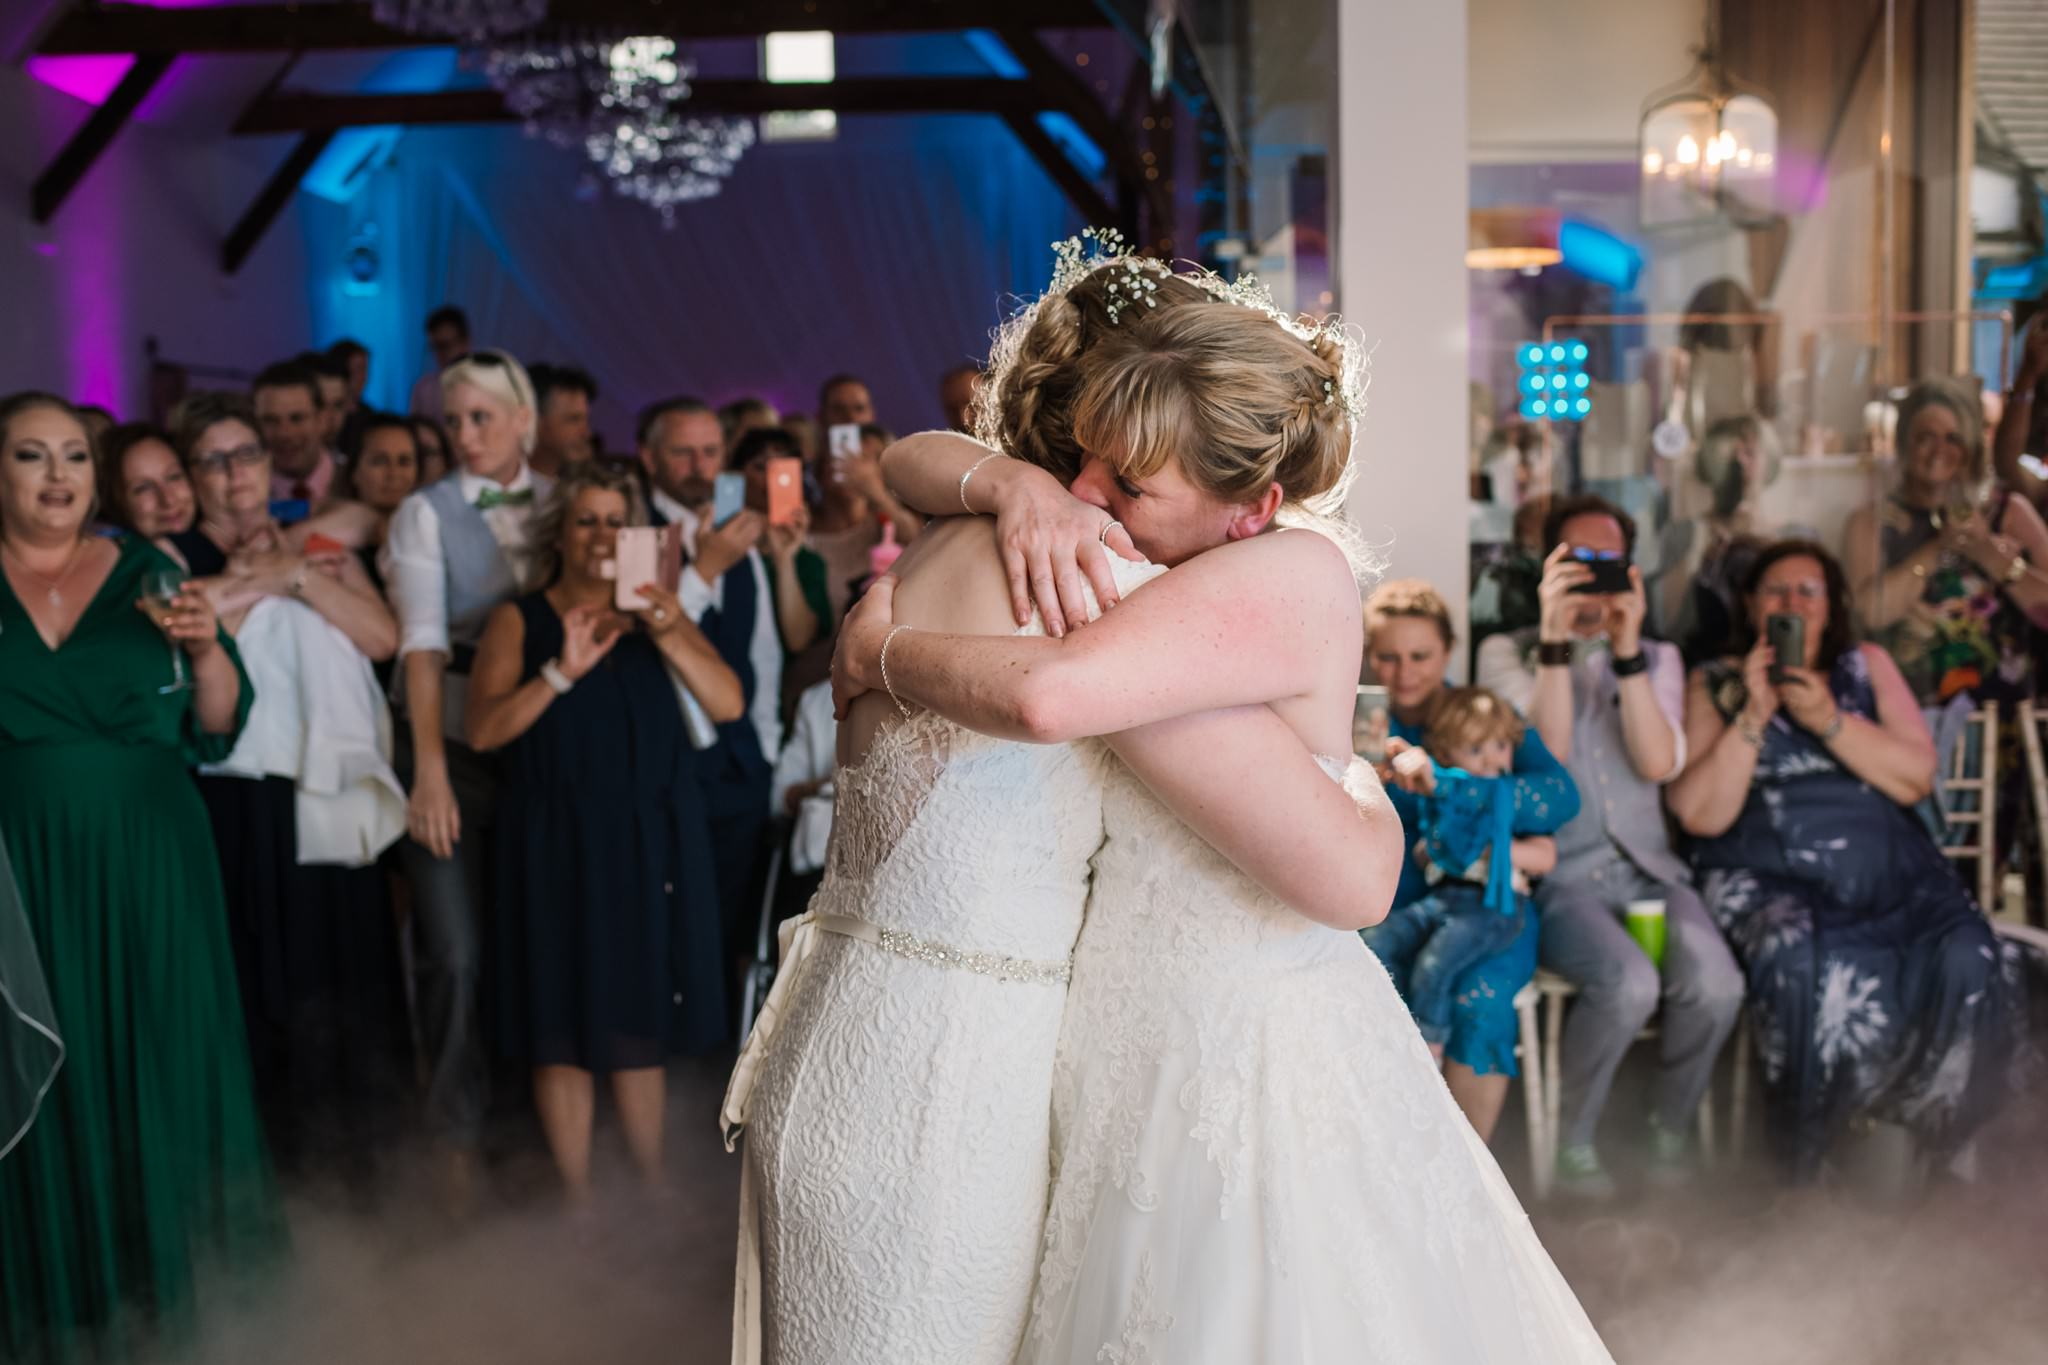 Photos of the first dance at Three Choirs Vineyard wedding